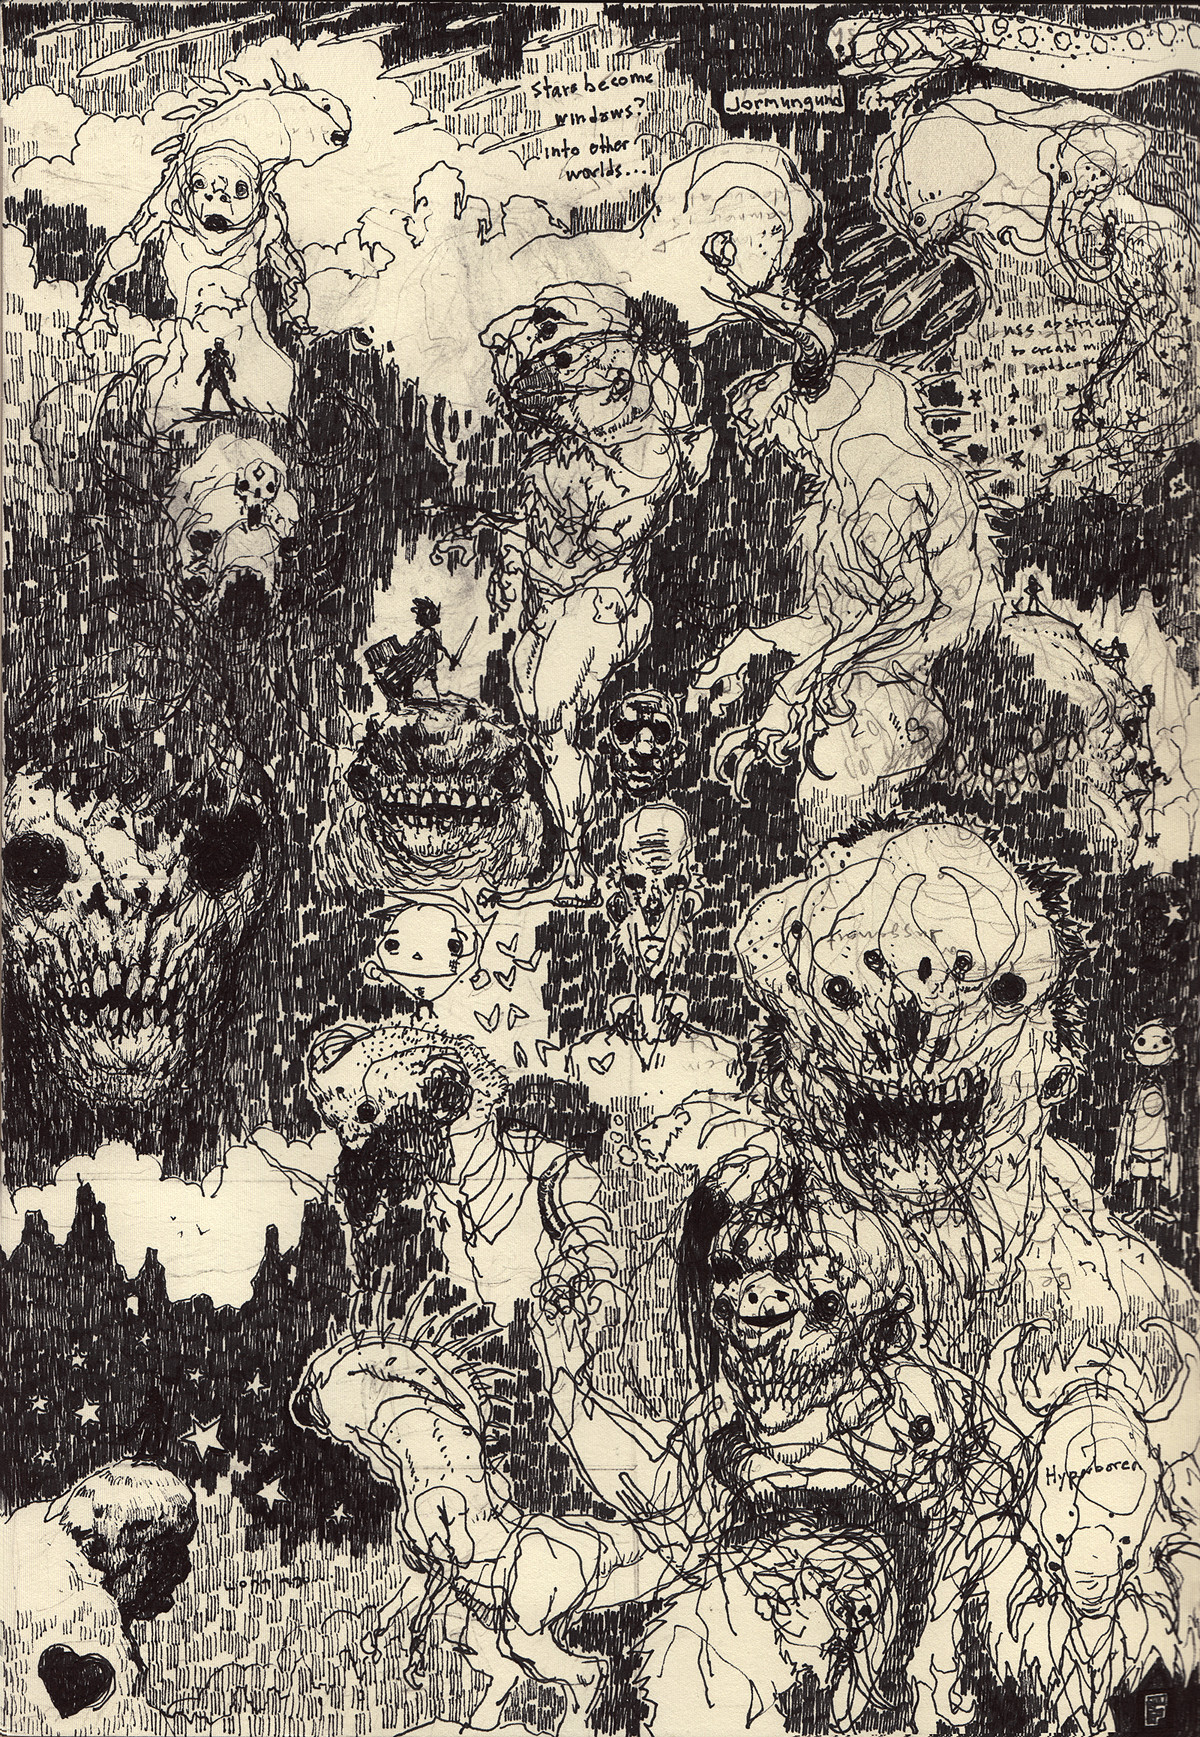 Scott flanders sketchbook dreamsofhyperborea